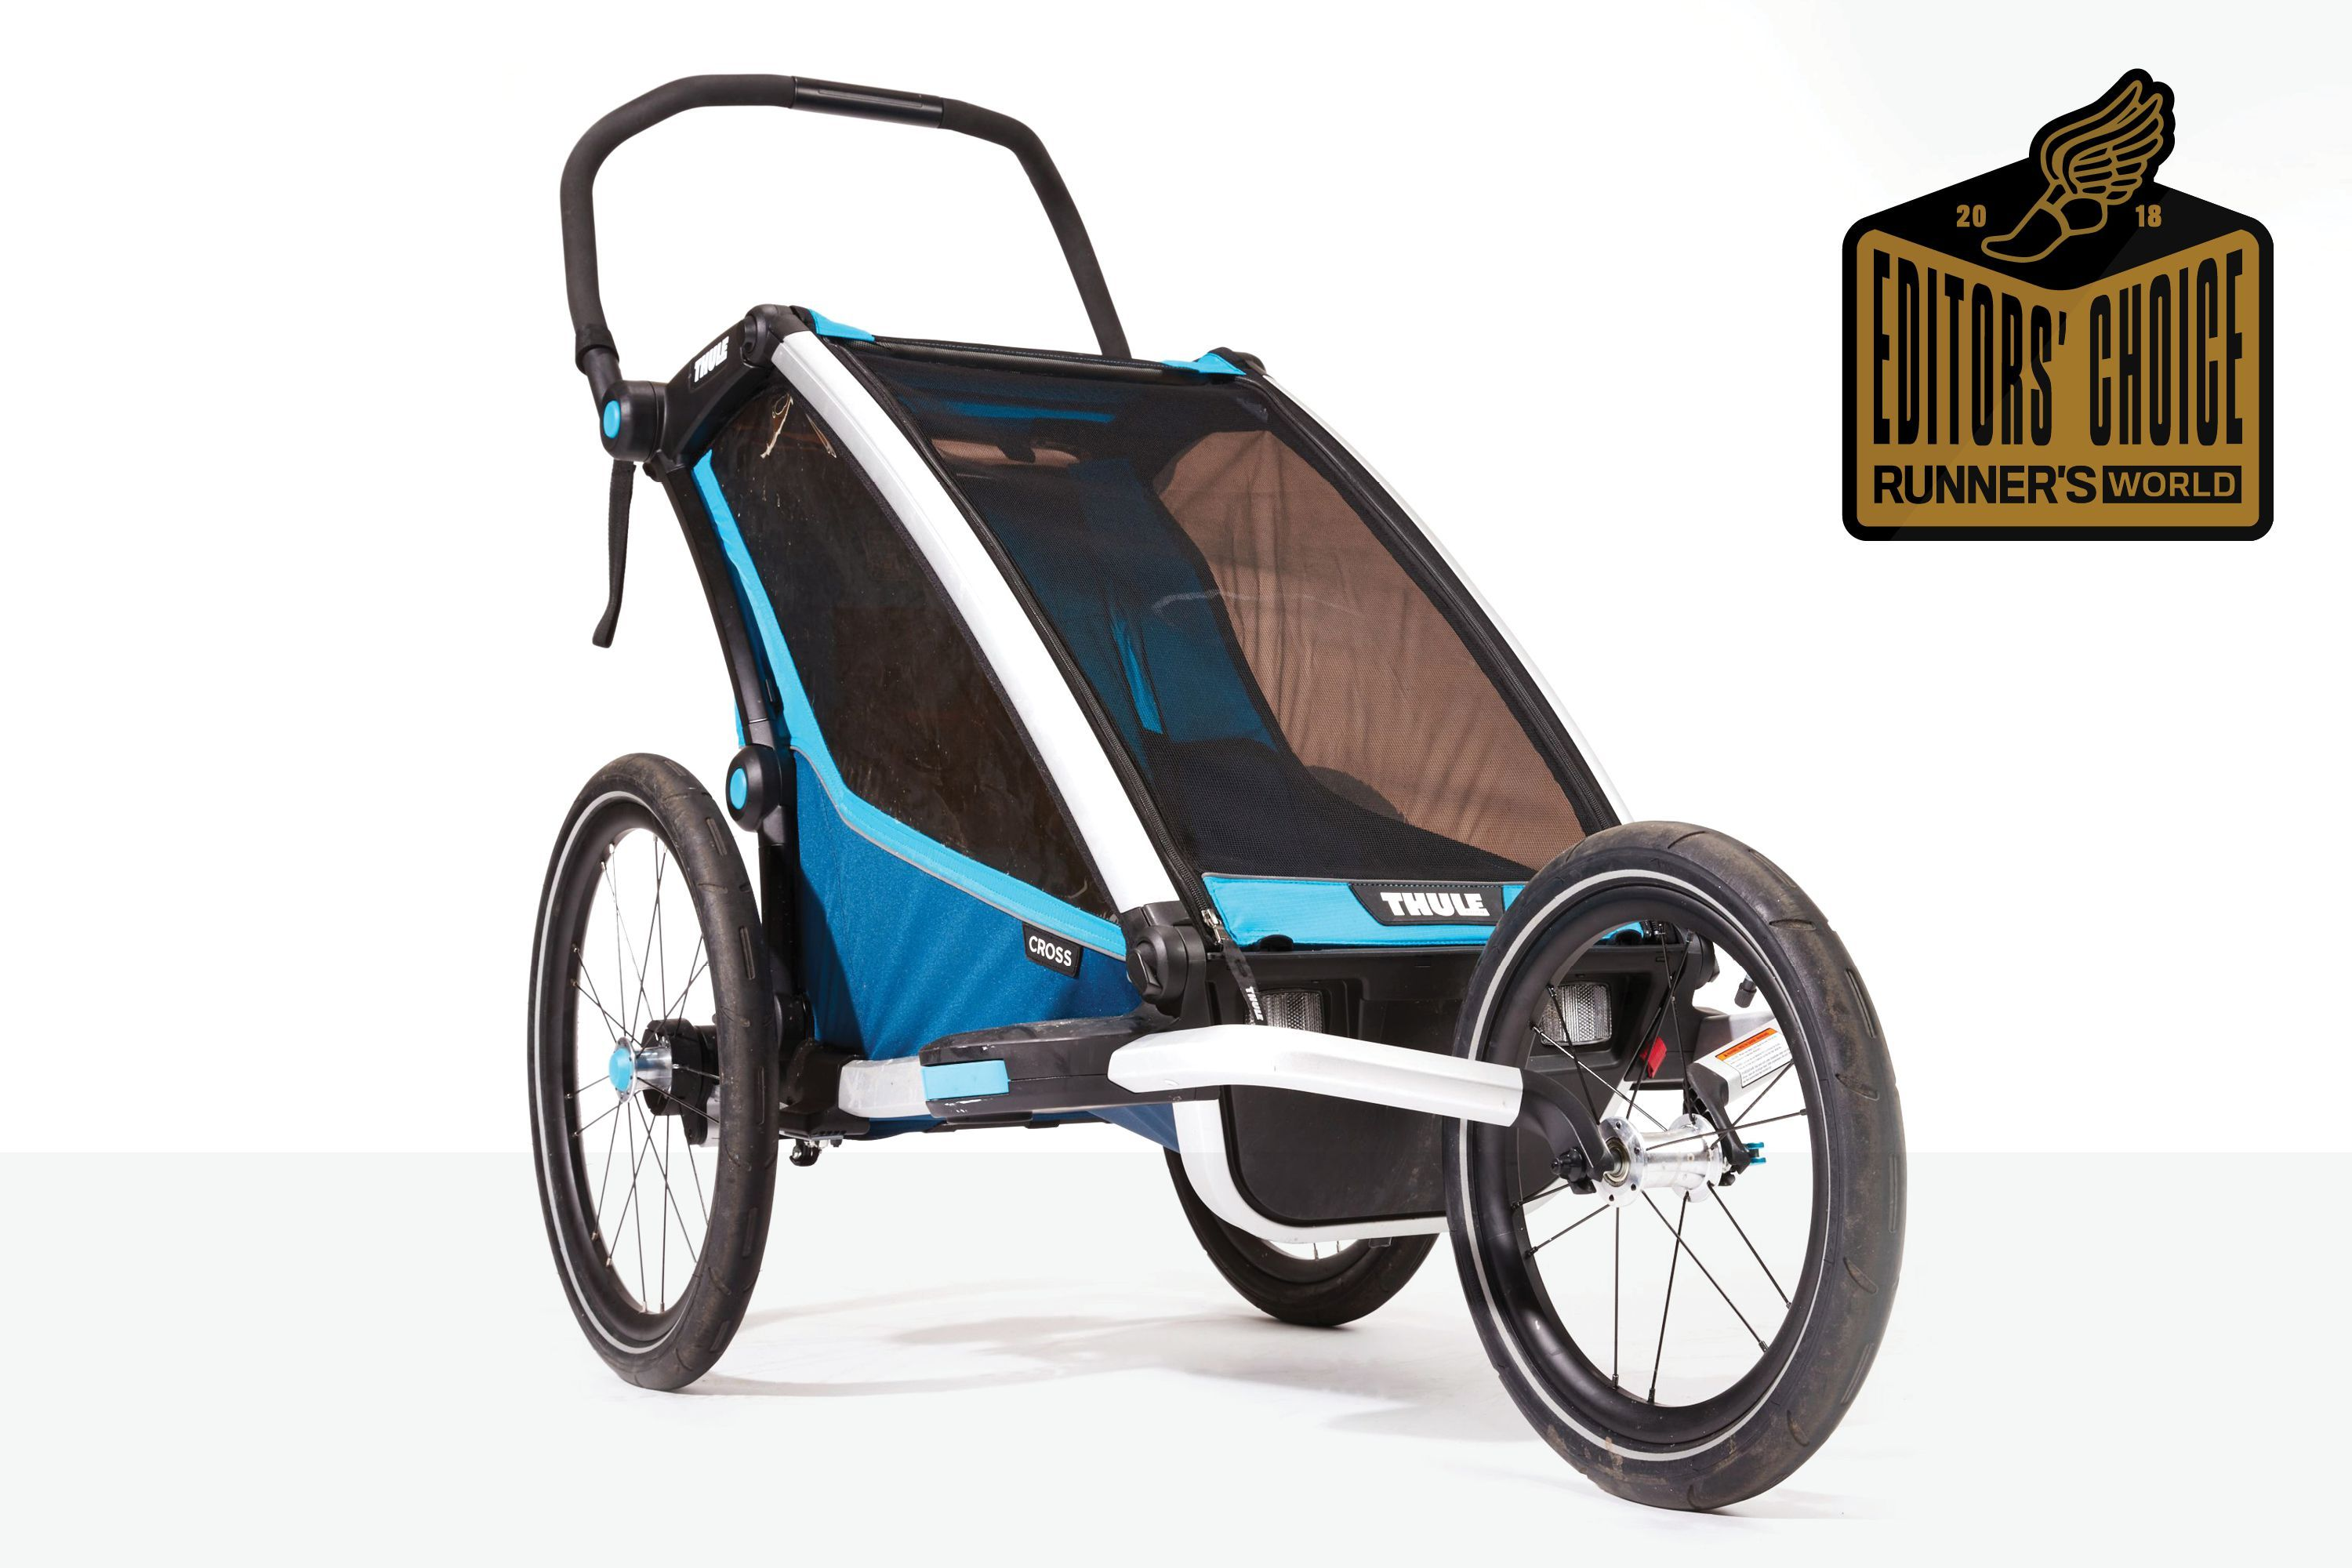 Car Seat Stroller Travel System Reviews Best Jogging Strollers Running Strollers 2019